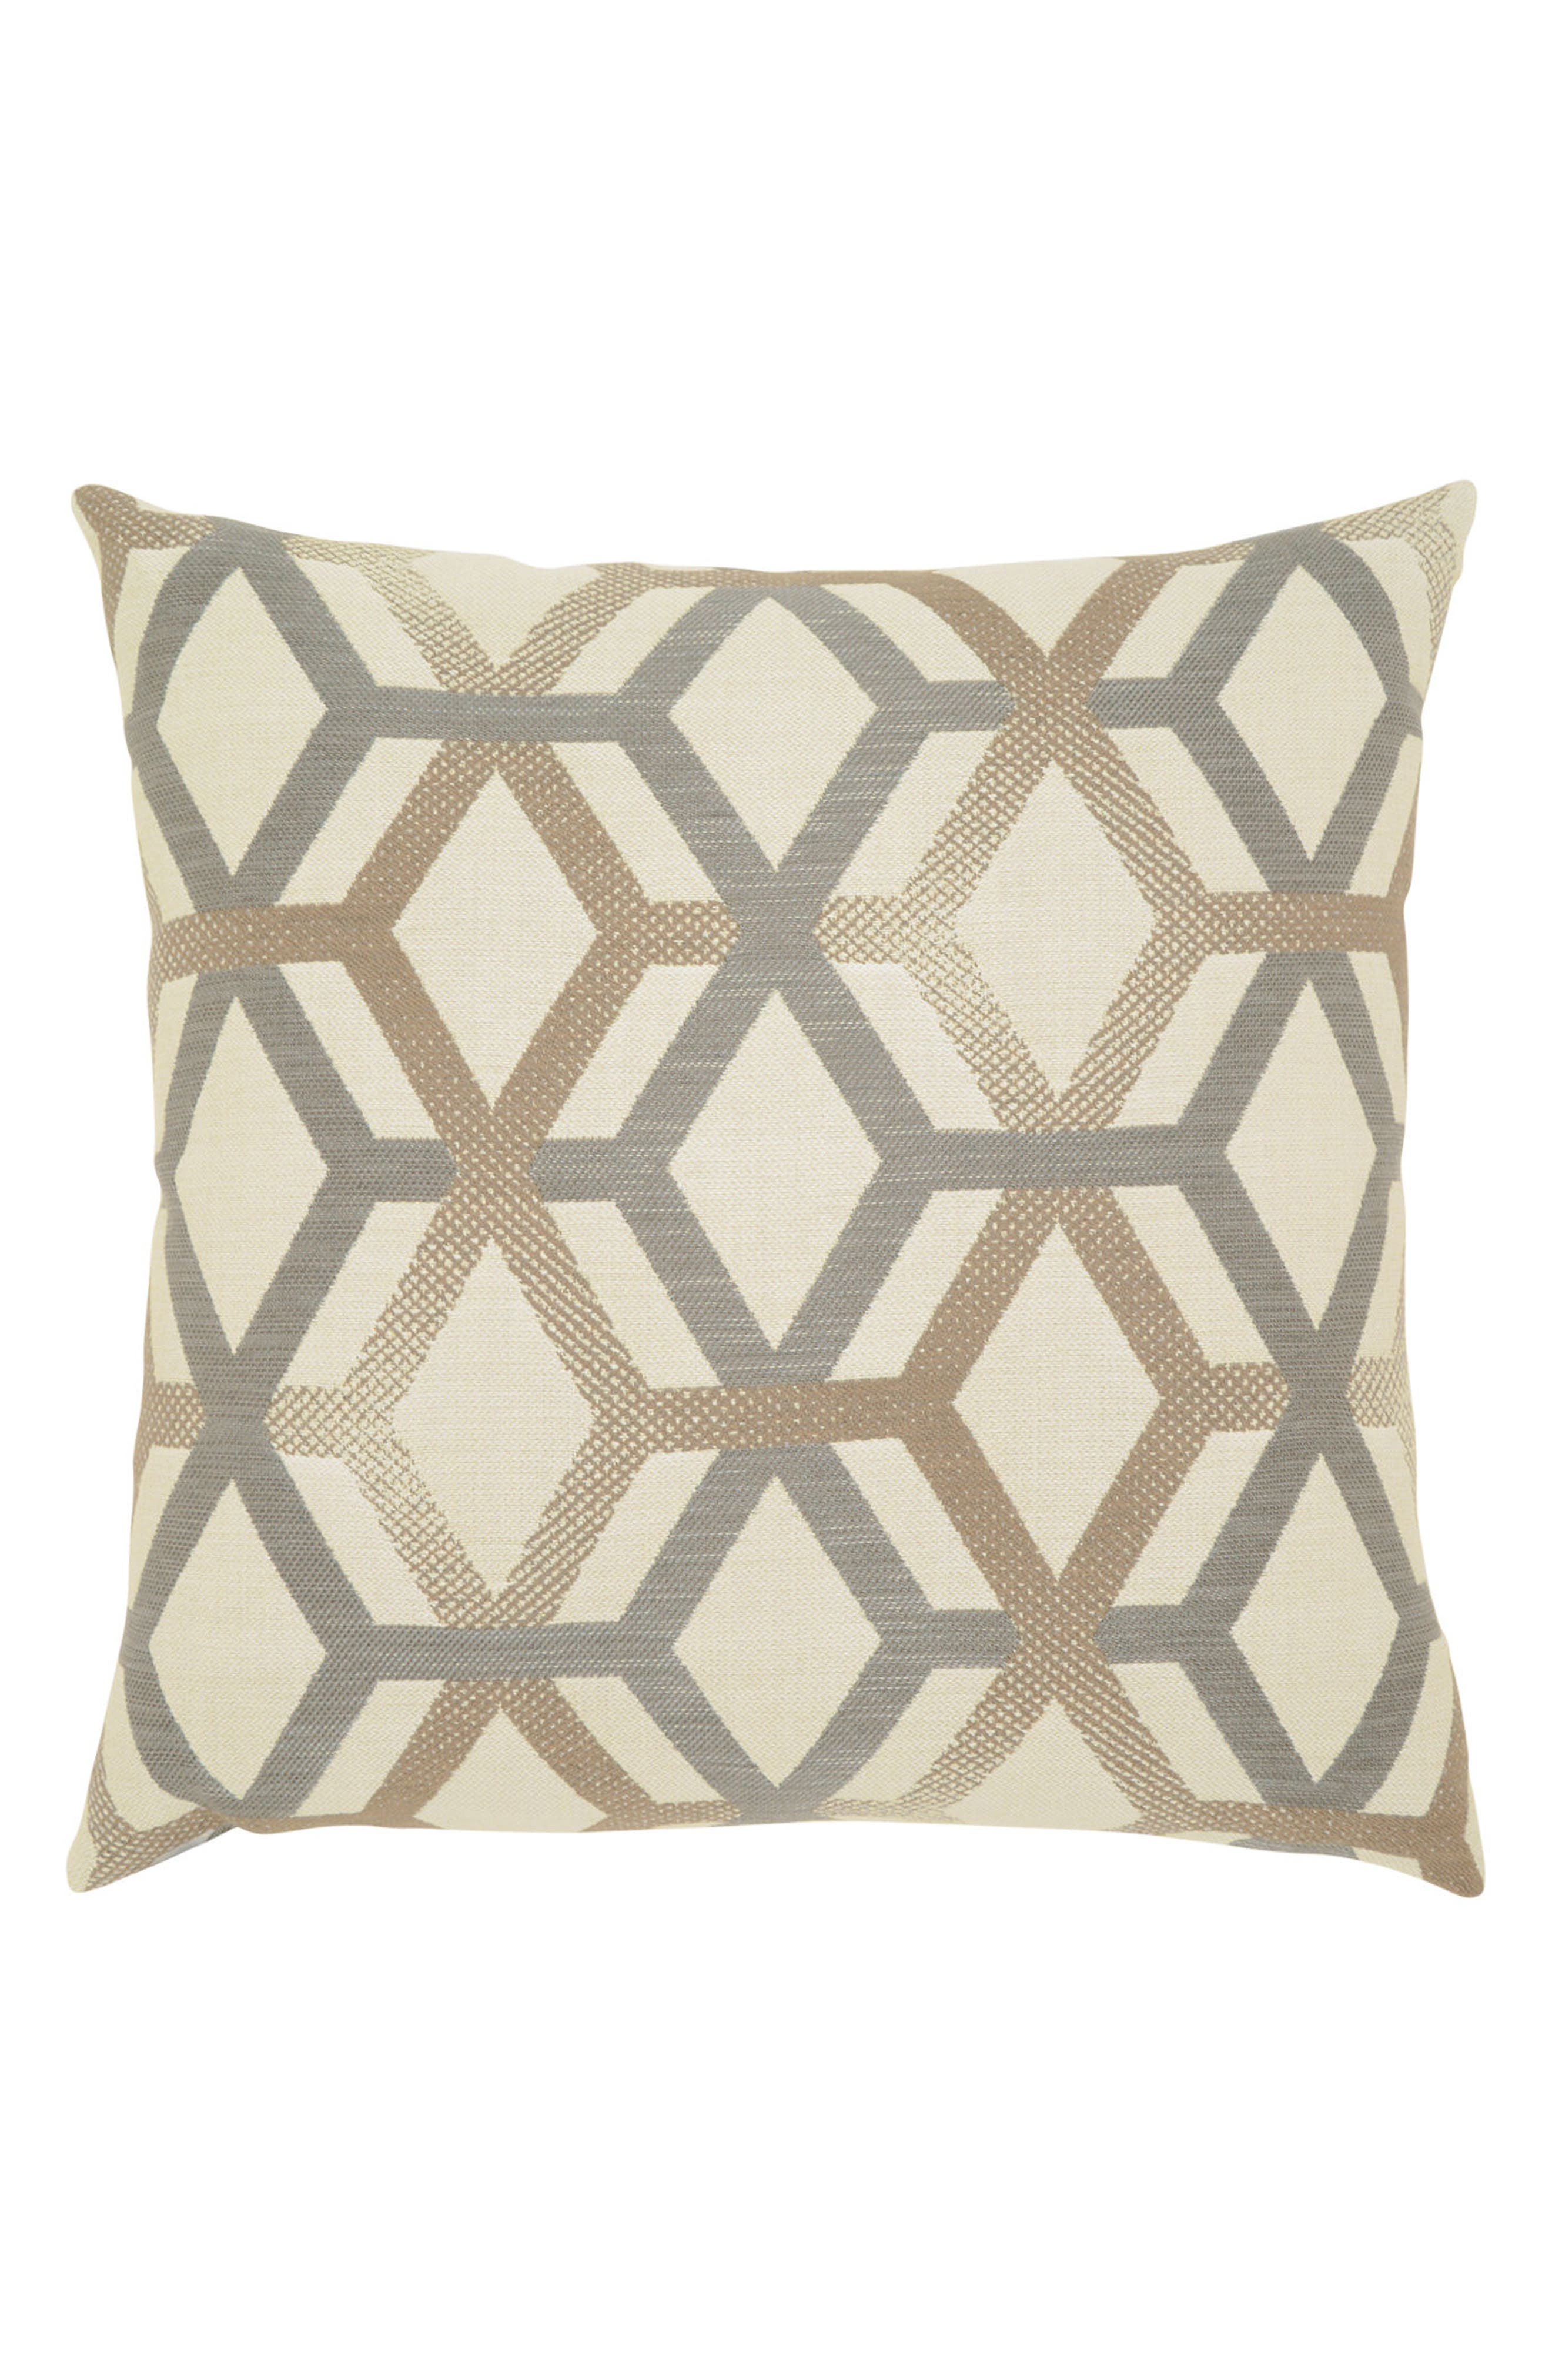 Main Image - Elaine Smith Lustrous Lines Indoor/Outdoor Accent Pillow